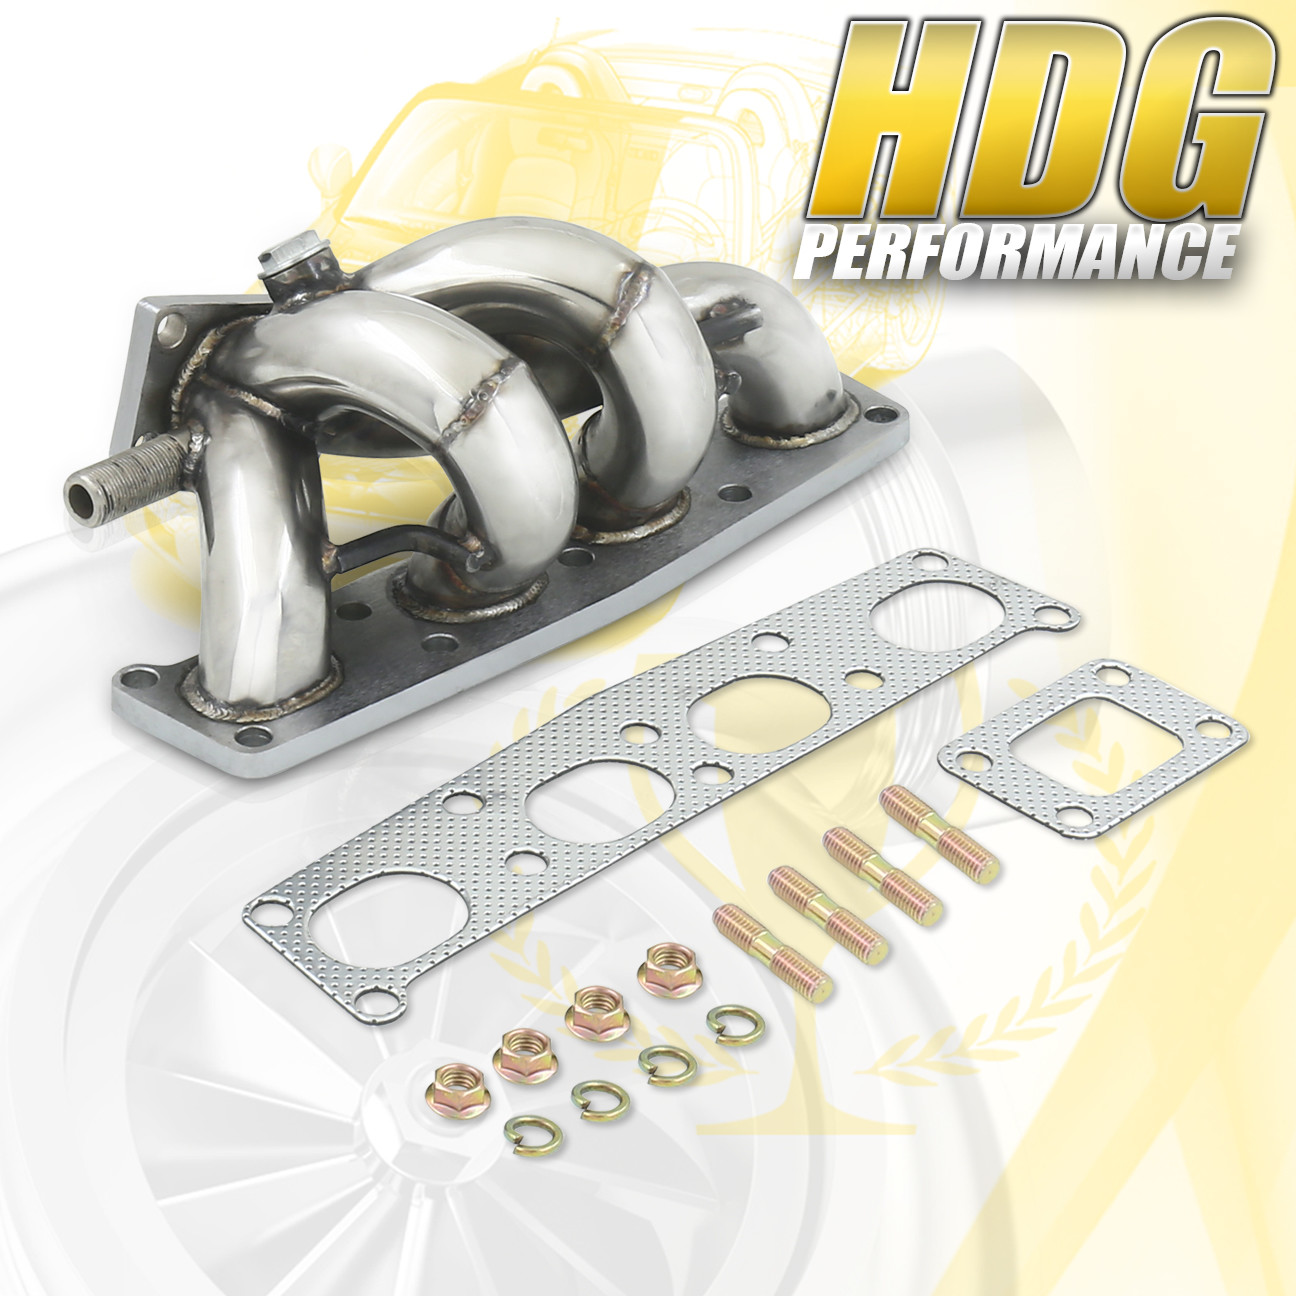 1996 Mazda Protege Exhaust Engine Diagram Stainless Steel Performance Turbo Manifold For 99 09 Rh Ebay Com Lx